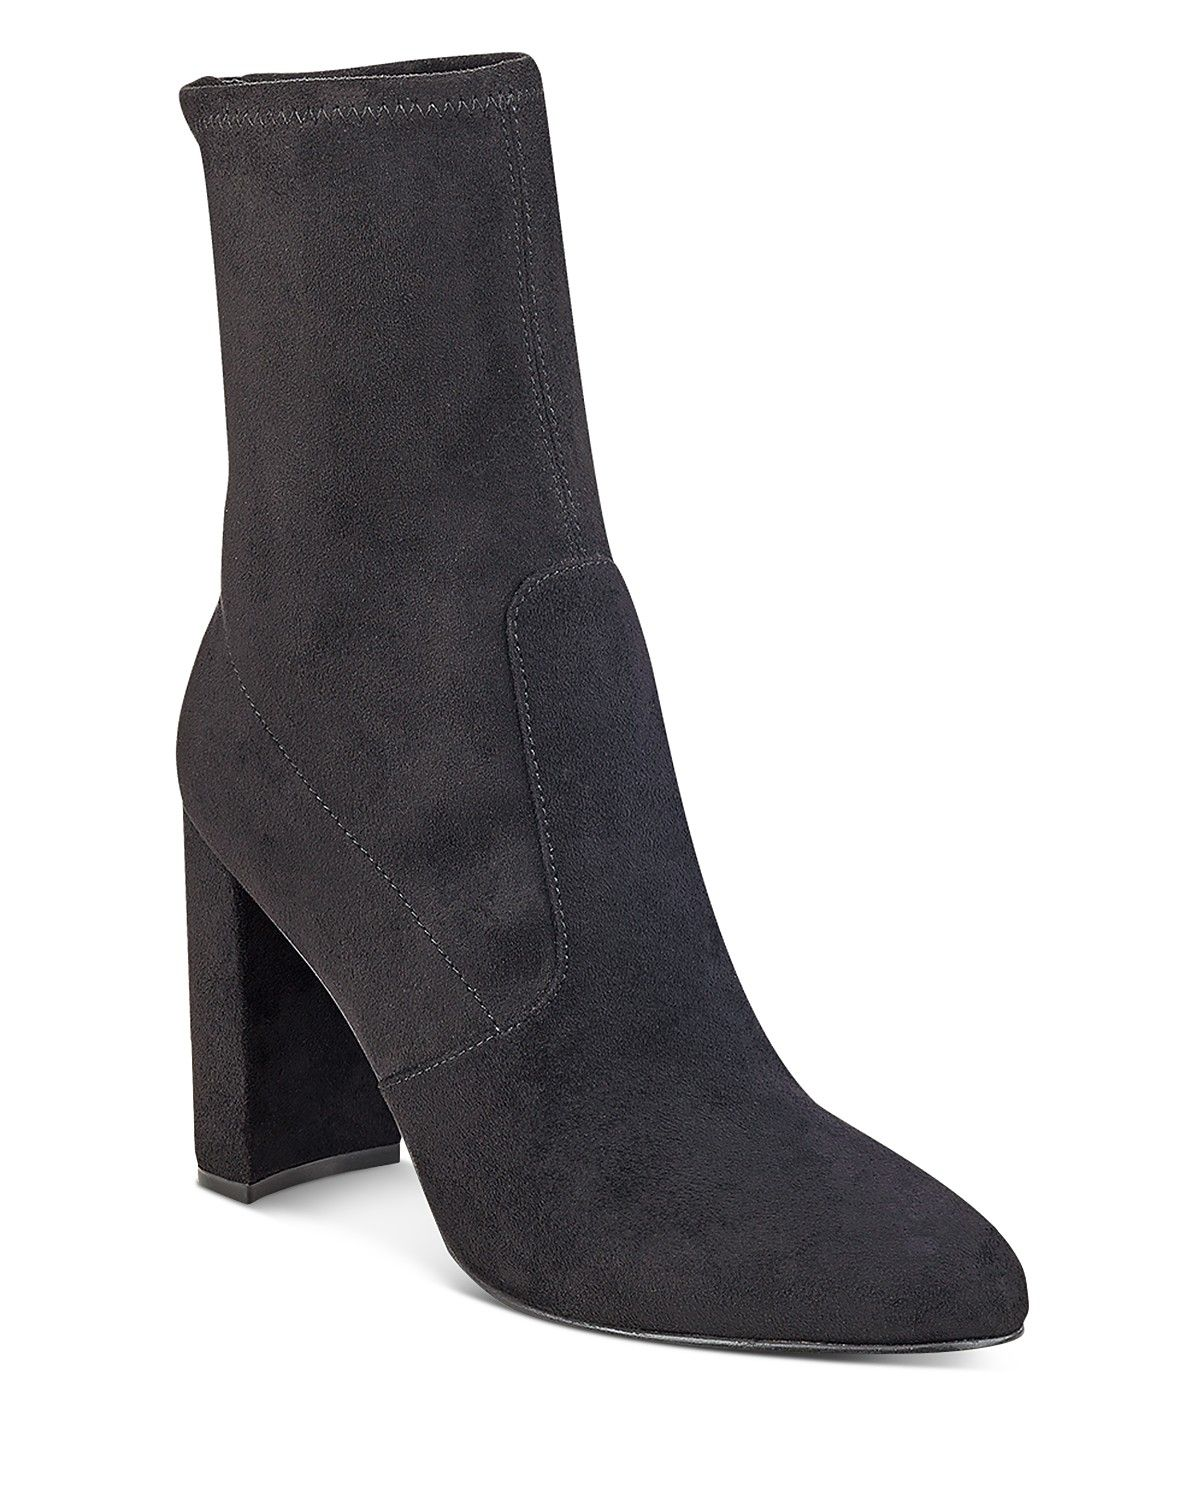 IVANKA TRUMP Sayida High Block Heel Booties | Bloomingdale's